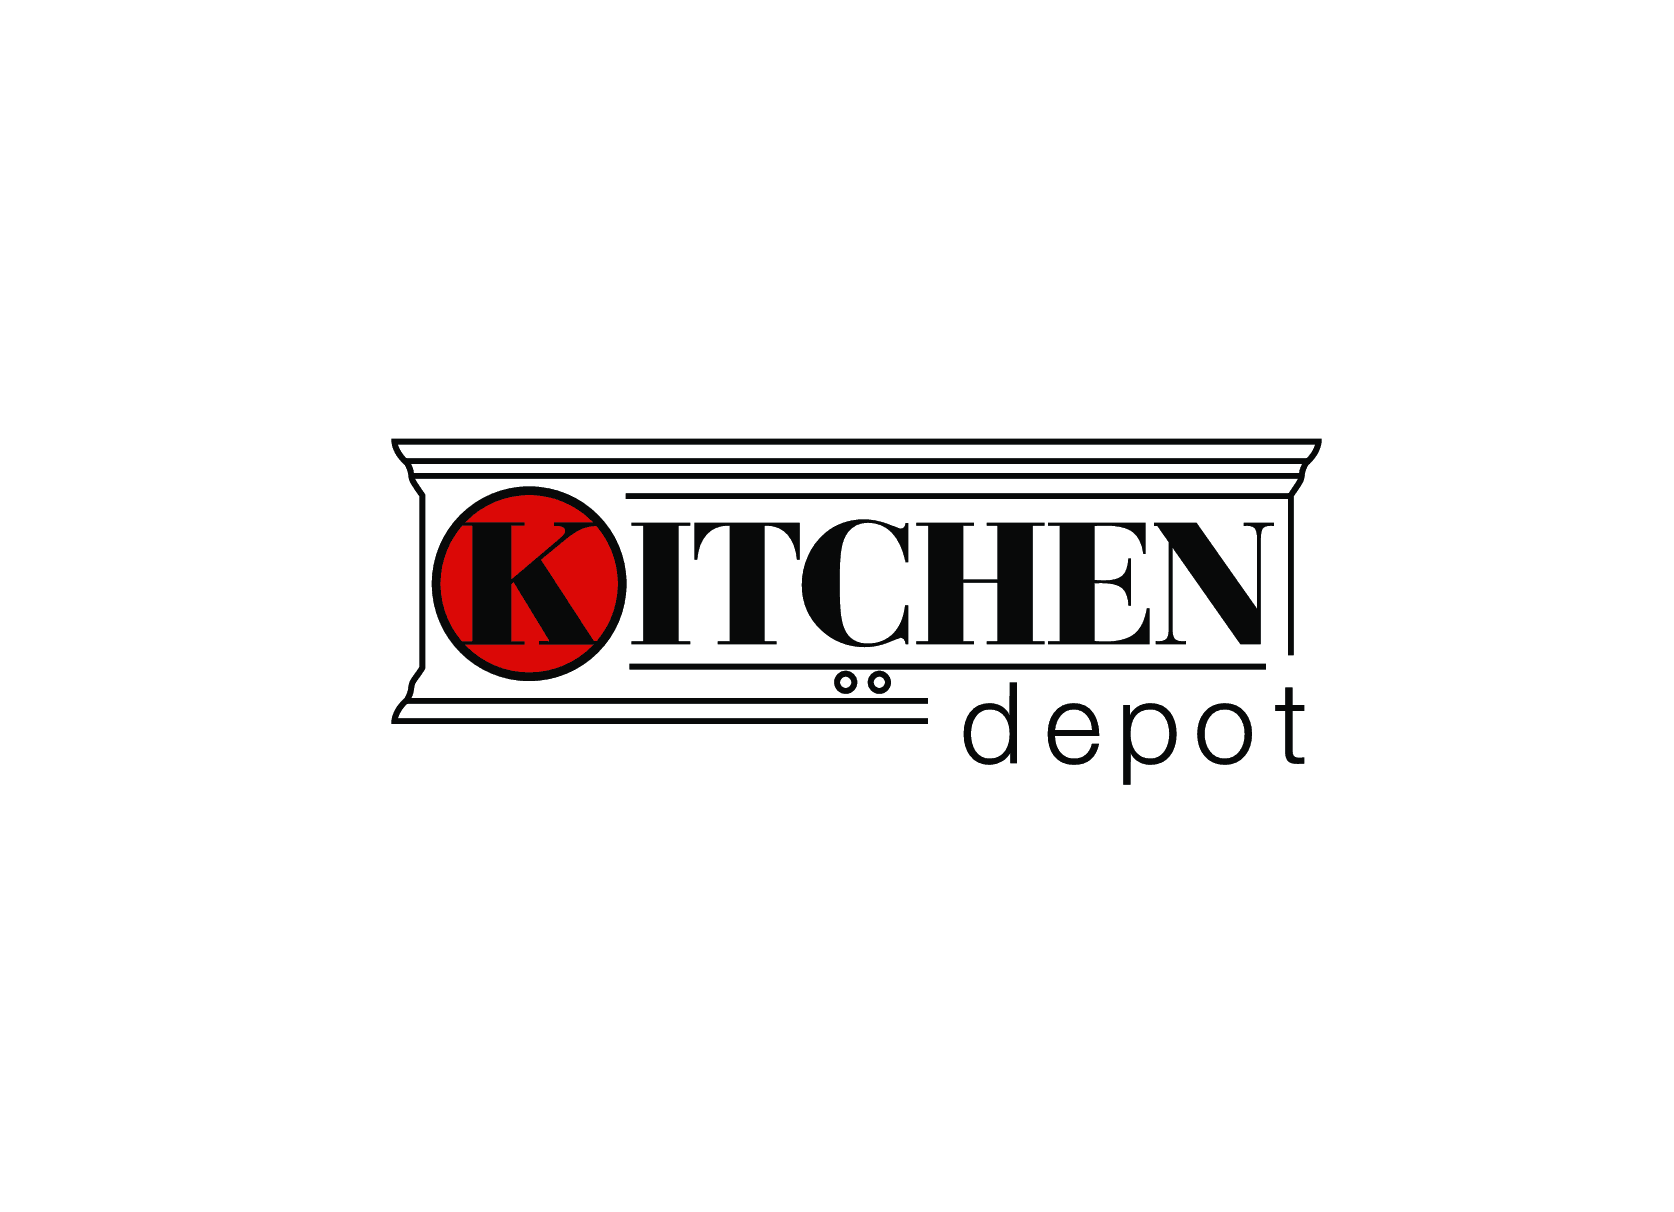 home kitchen depot